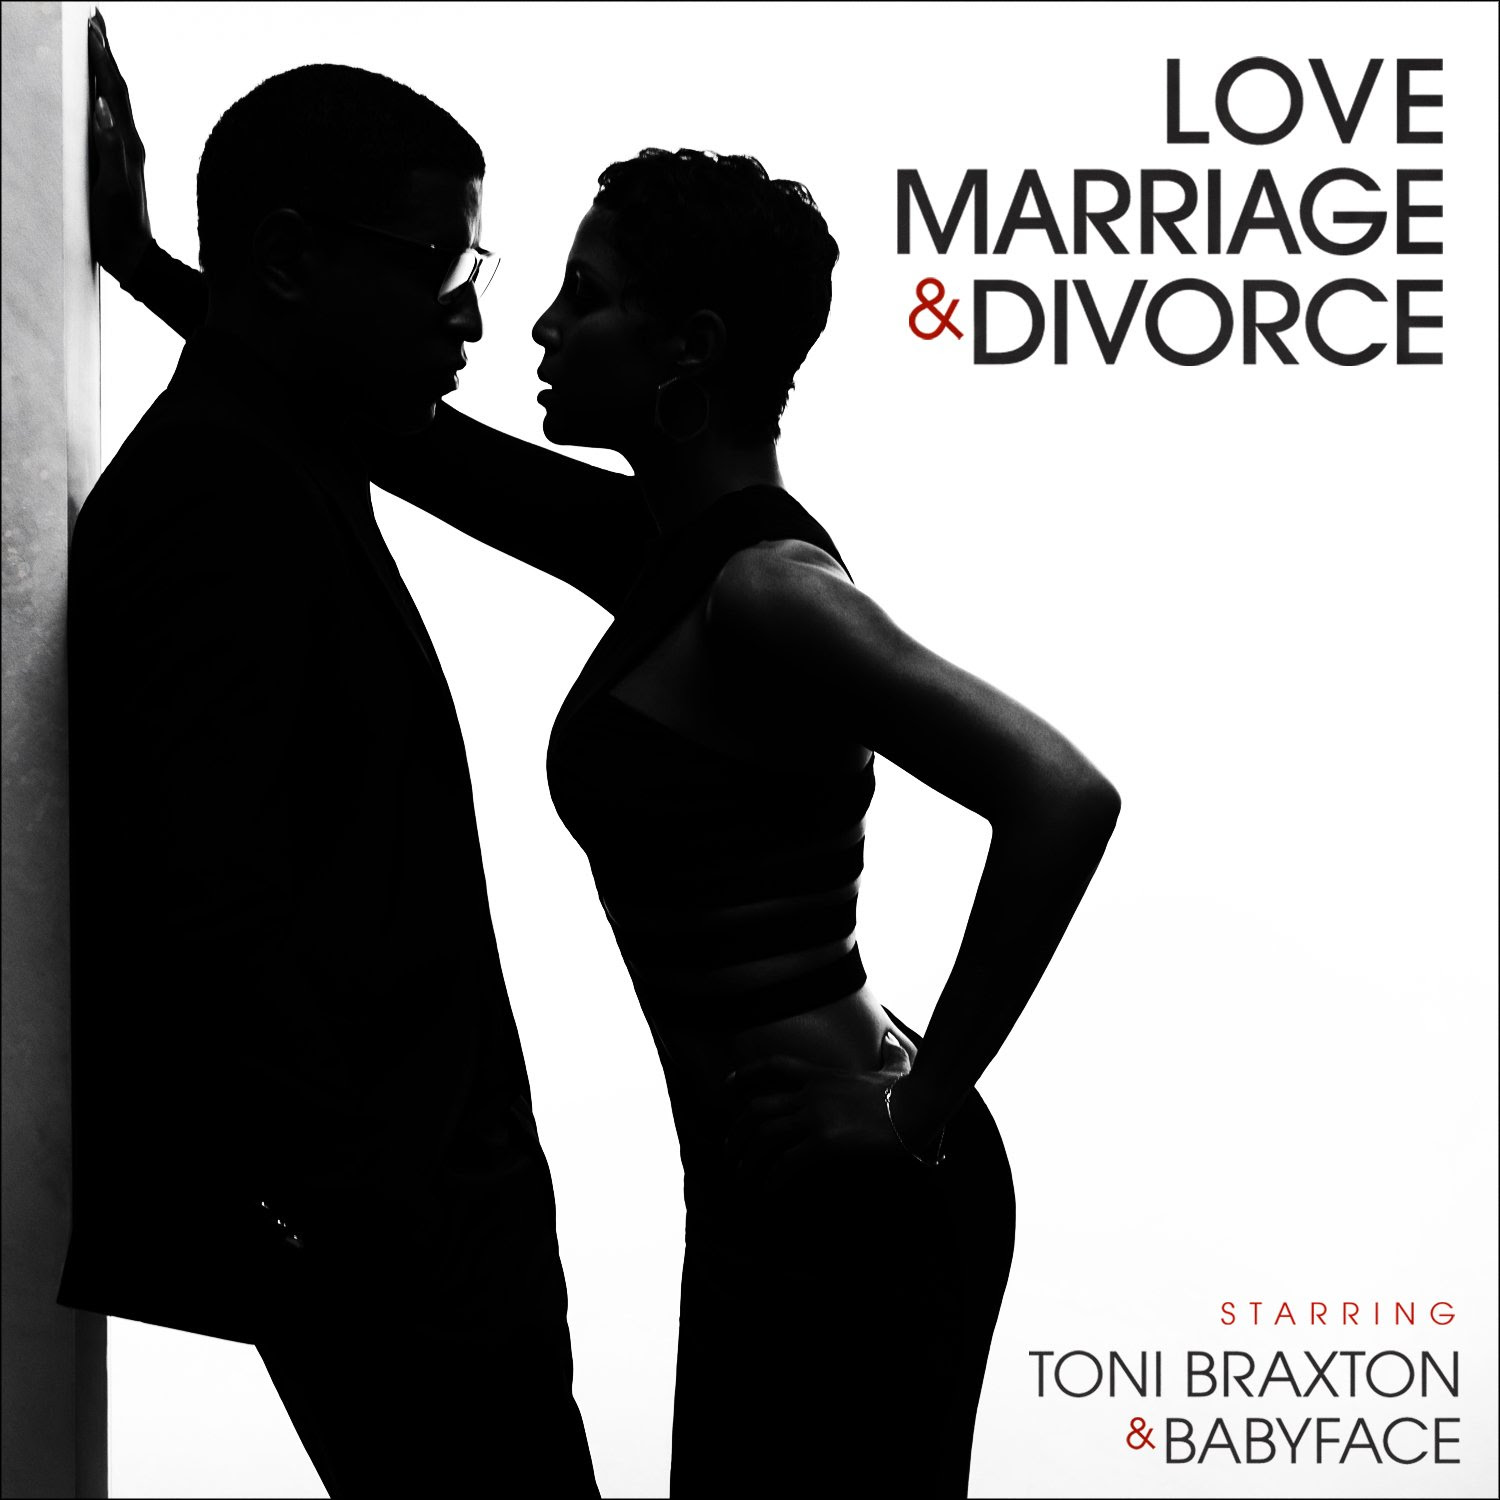 Love, Marriage, and Divorce - Toni Braxton and Babyface